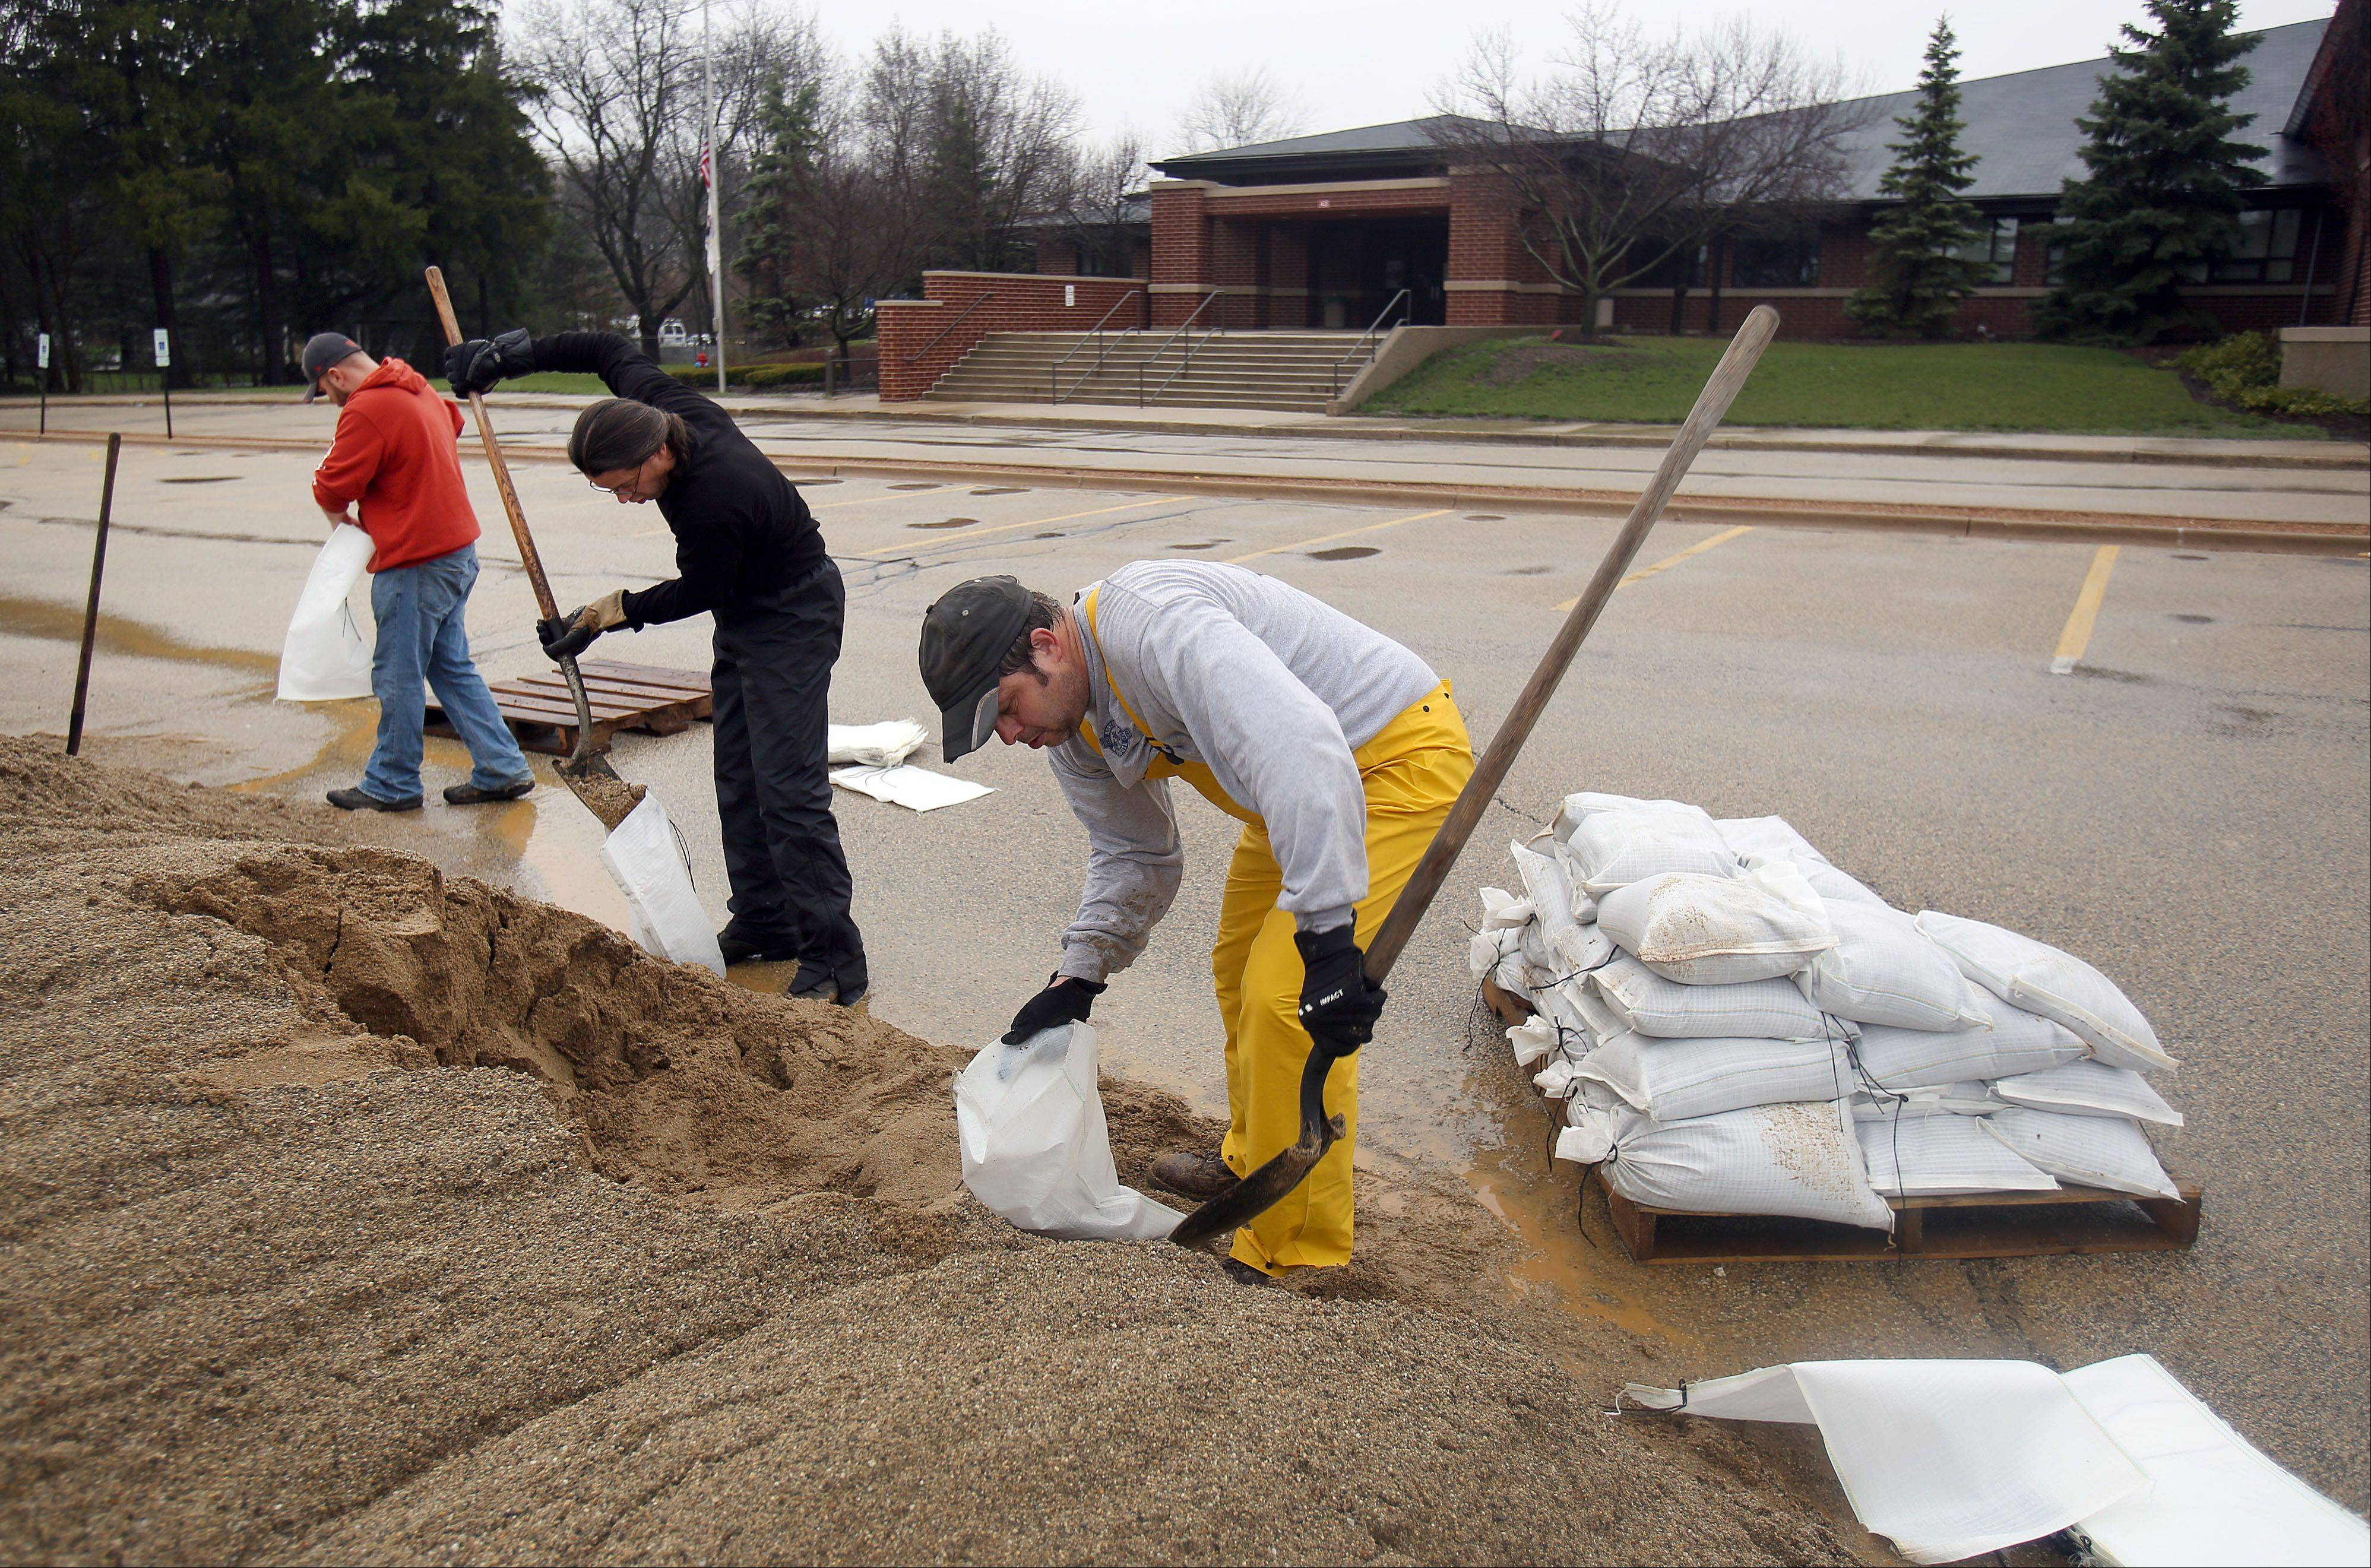 Volunteers from left, David Gonzalez, Mark Horvat and Eric Sindermann, all of Gurnee, help sand bag in front of Viking School in preparation for flooding in Gurnee Thursday morning.